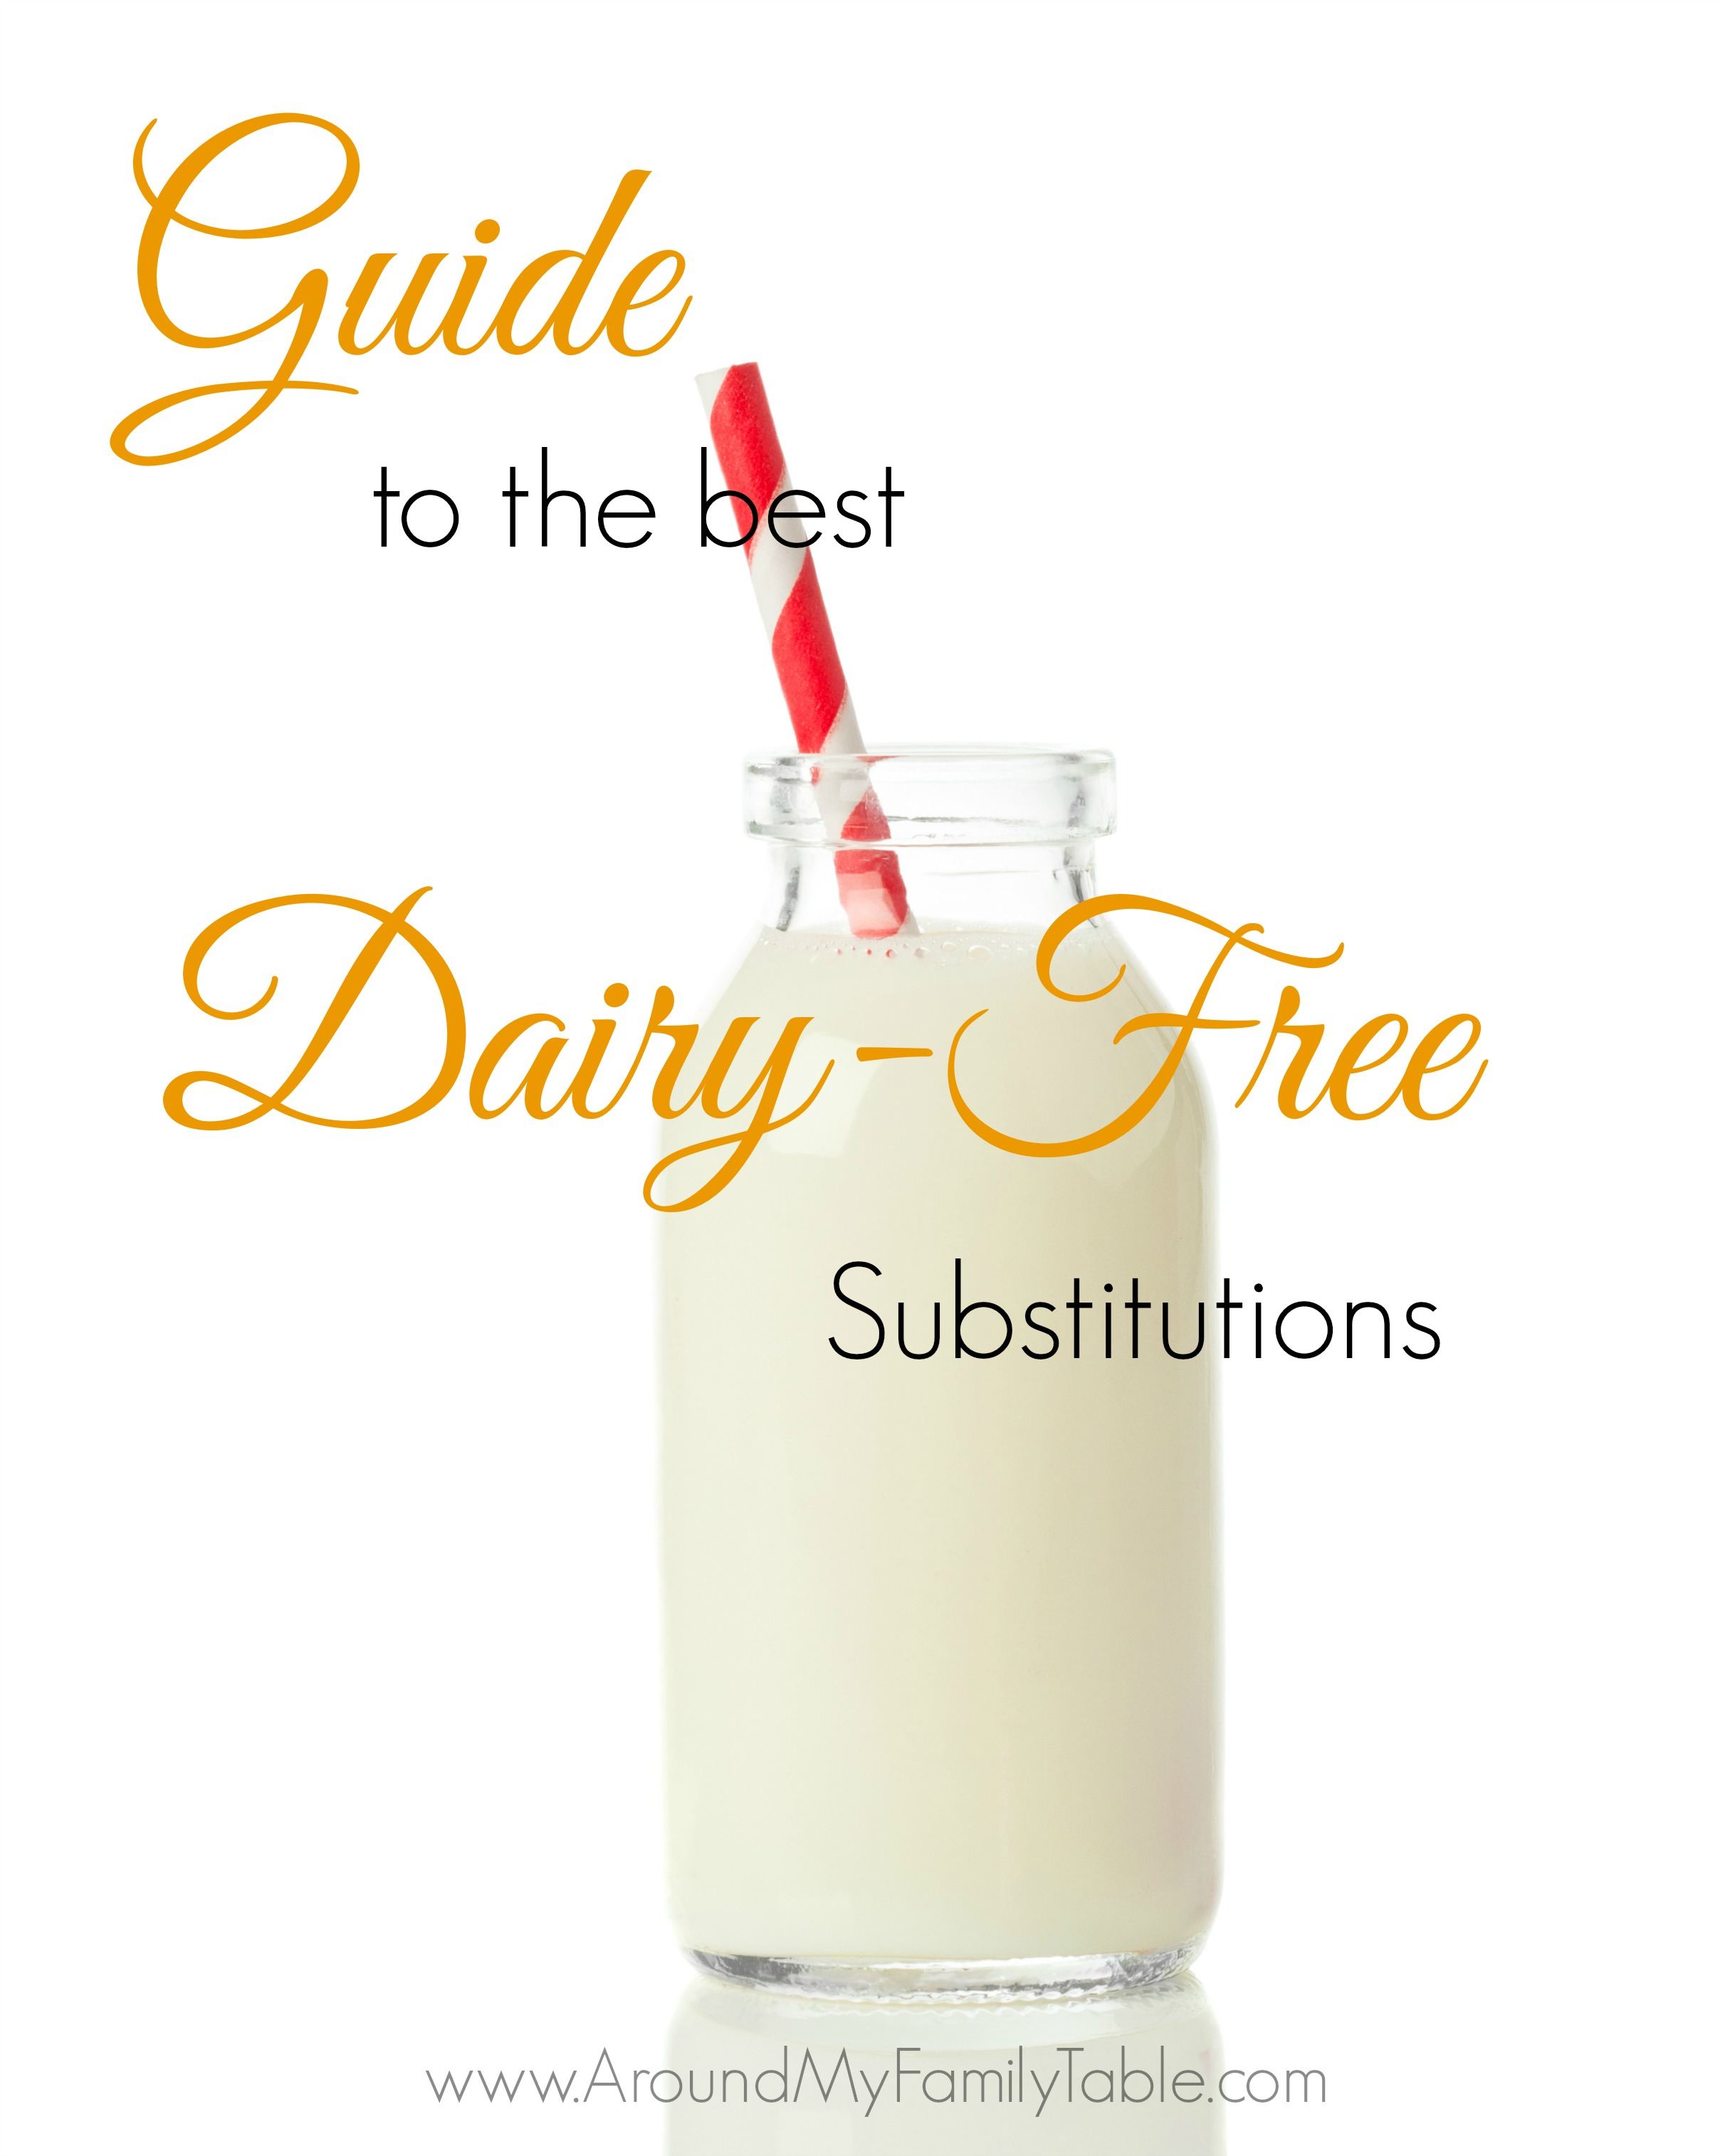 Guide to the best Dairy Free Substitutions